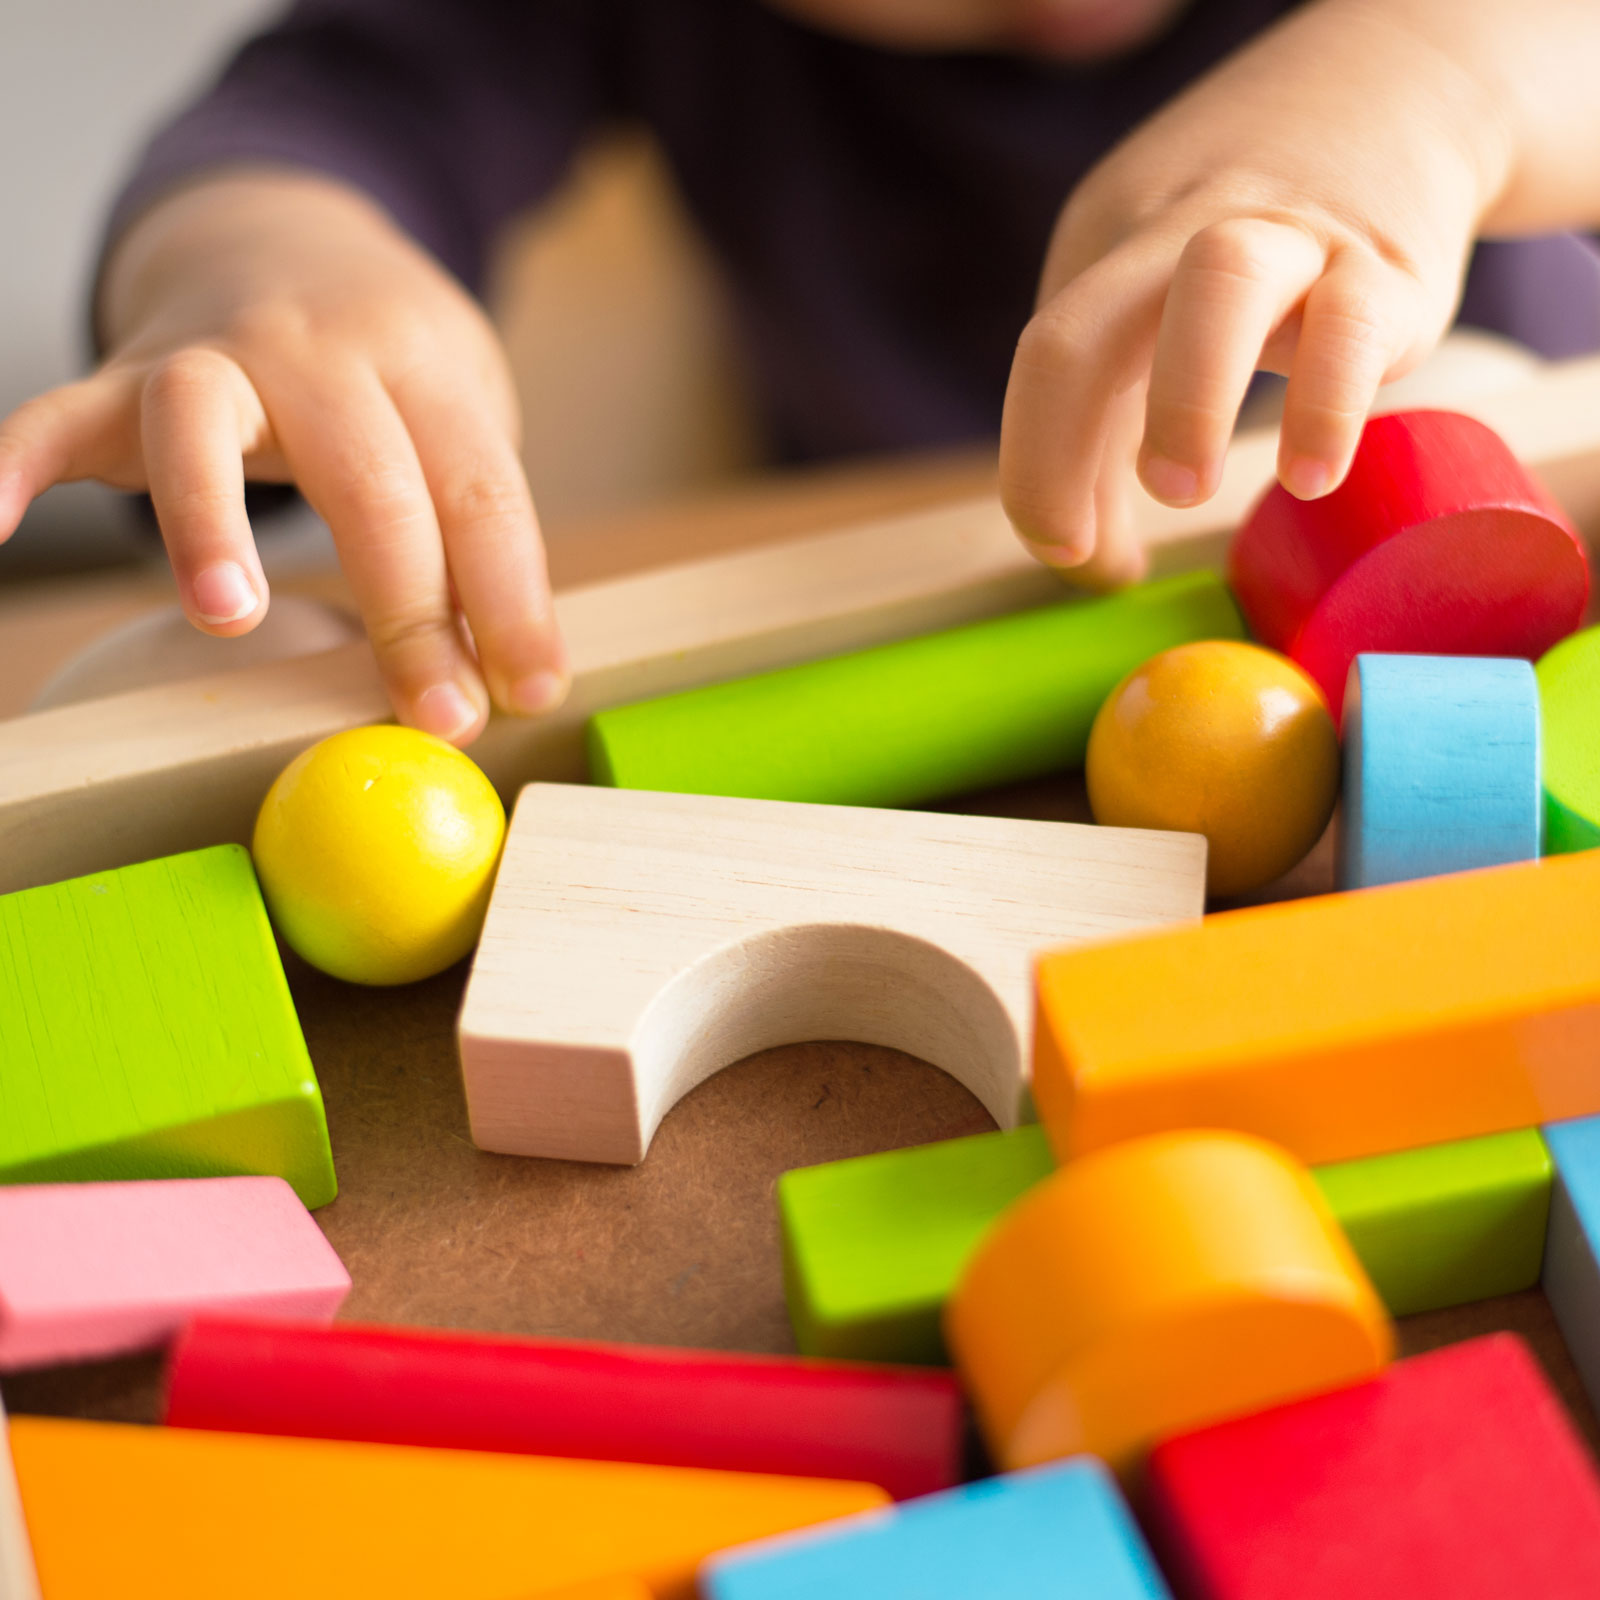 toddler hands playing with colorful blocks